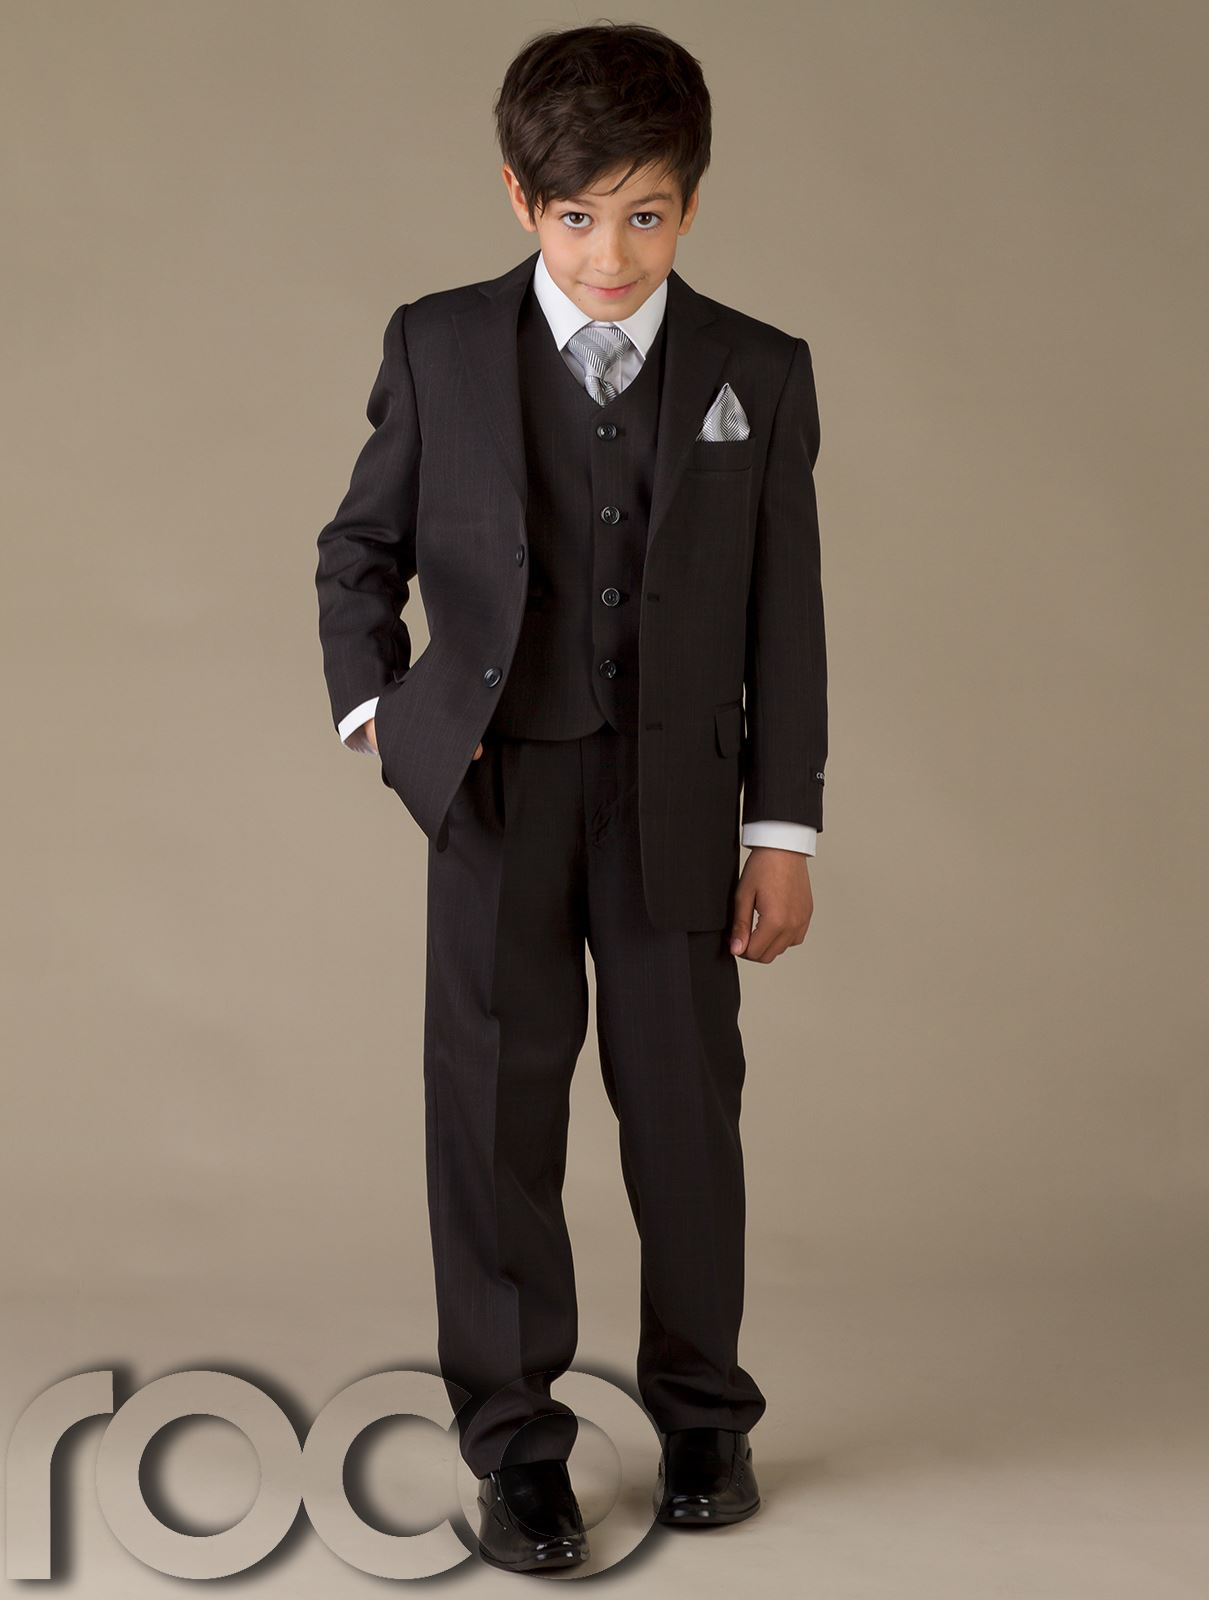 Boys Wedding Suit, Boys Prom Suit, Navy, Grey, Page Boy Suits, Age 1 ...